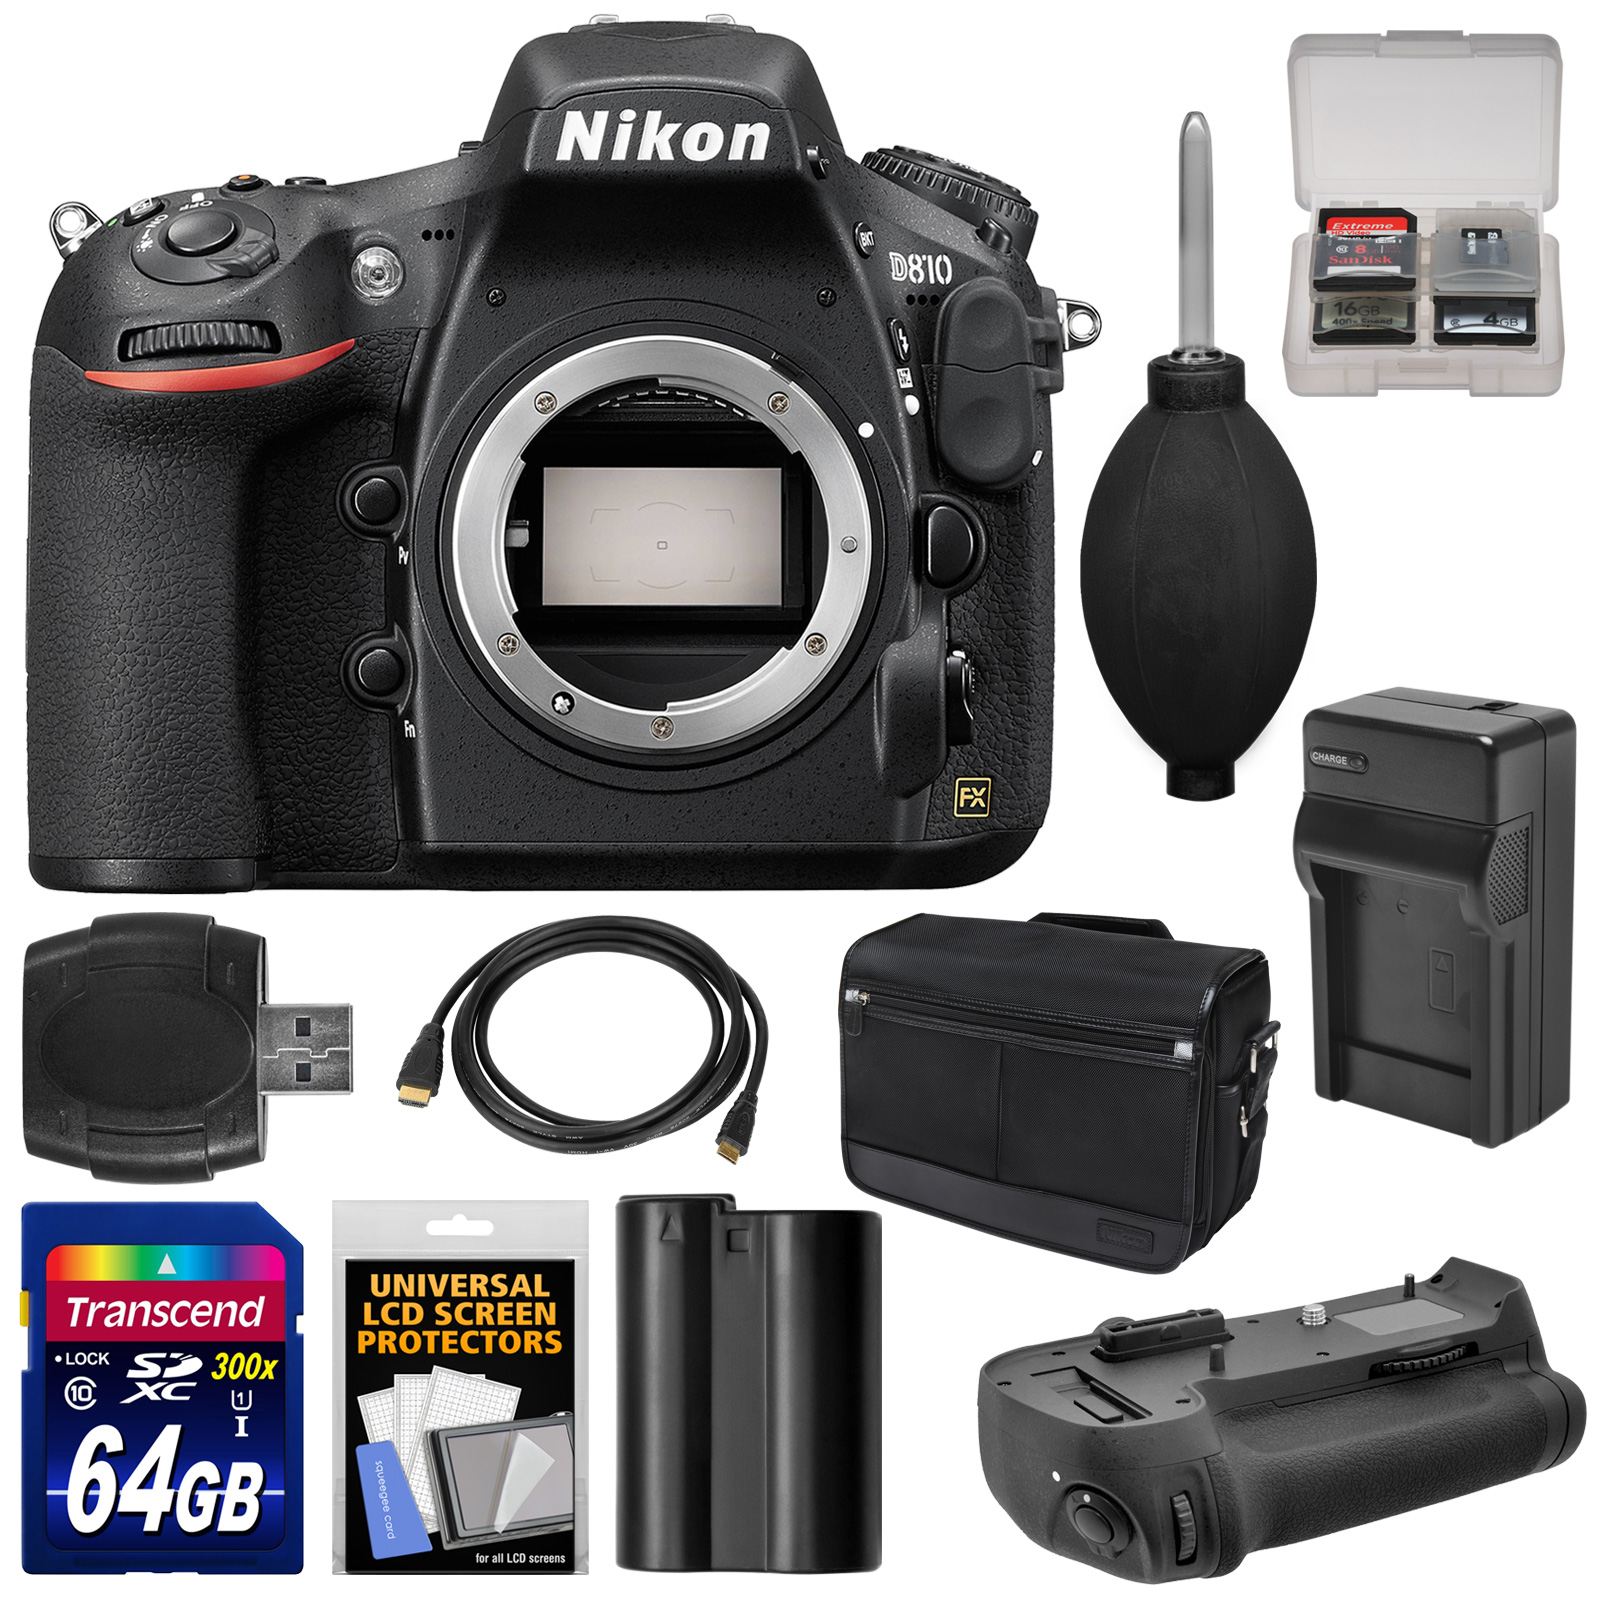 Nikon D810 Digital SLR Camera Body with 64GB Card + Battery & Charger + Shoulder Bag + Grip + Accessory Kit